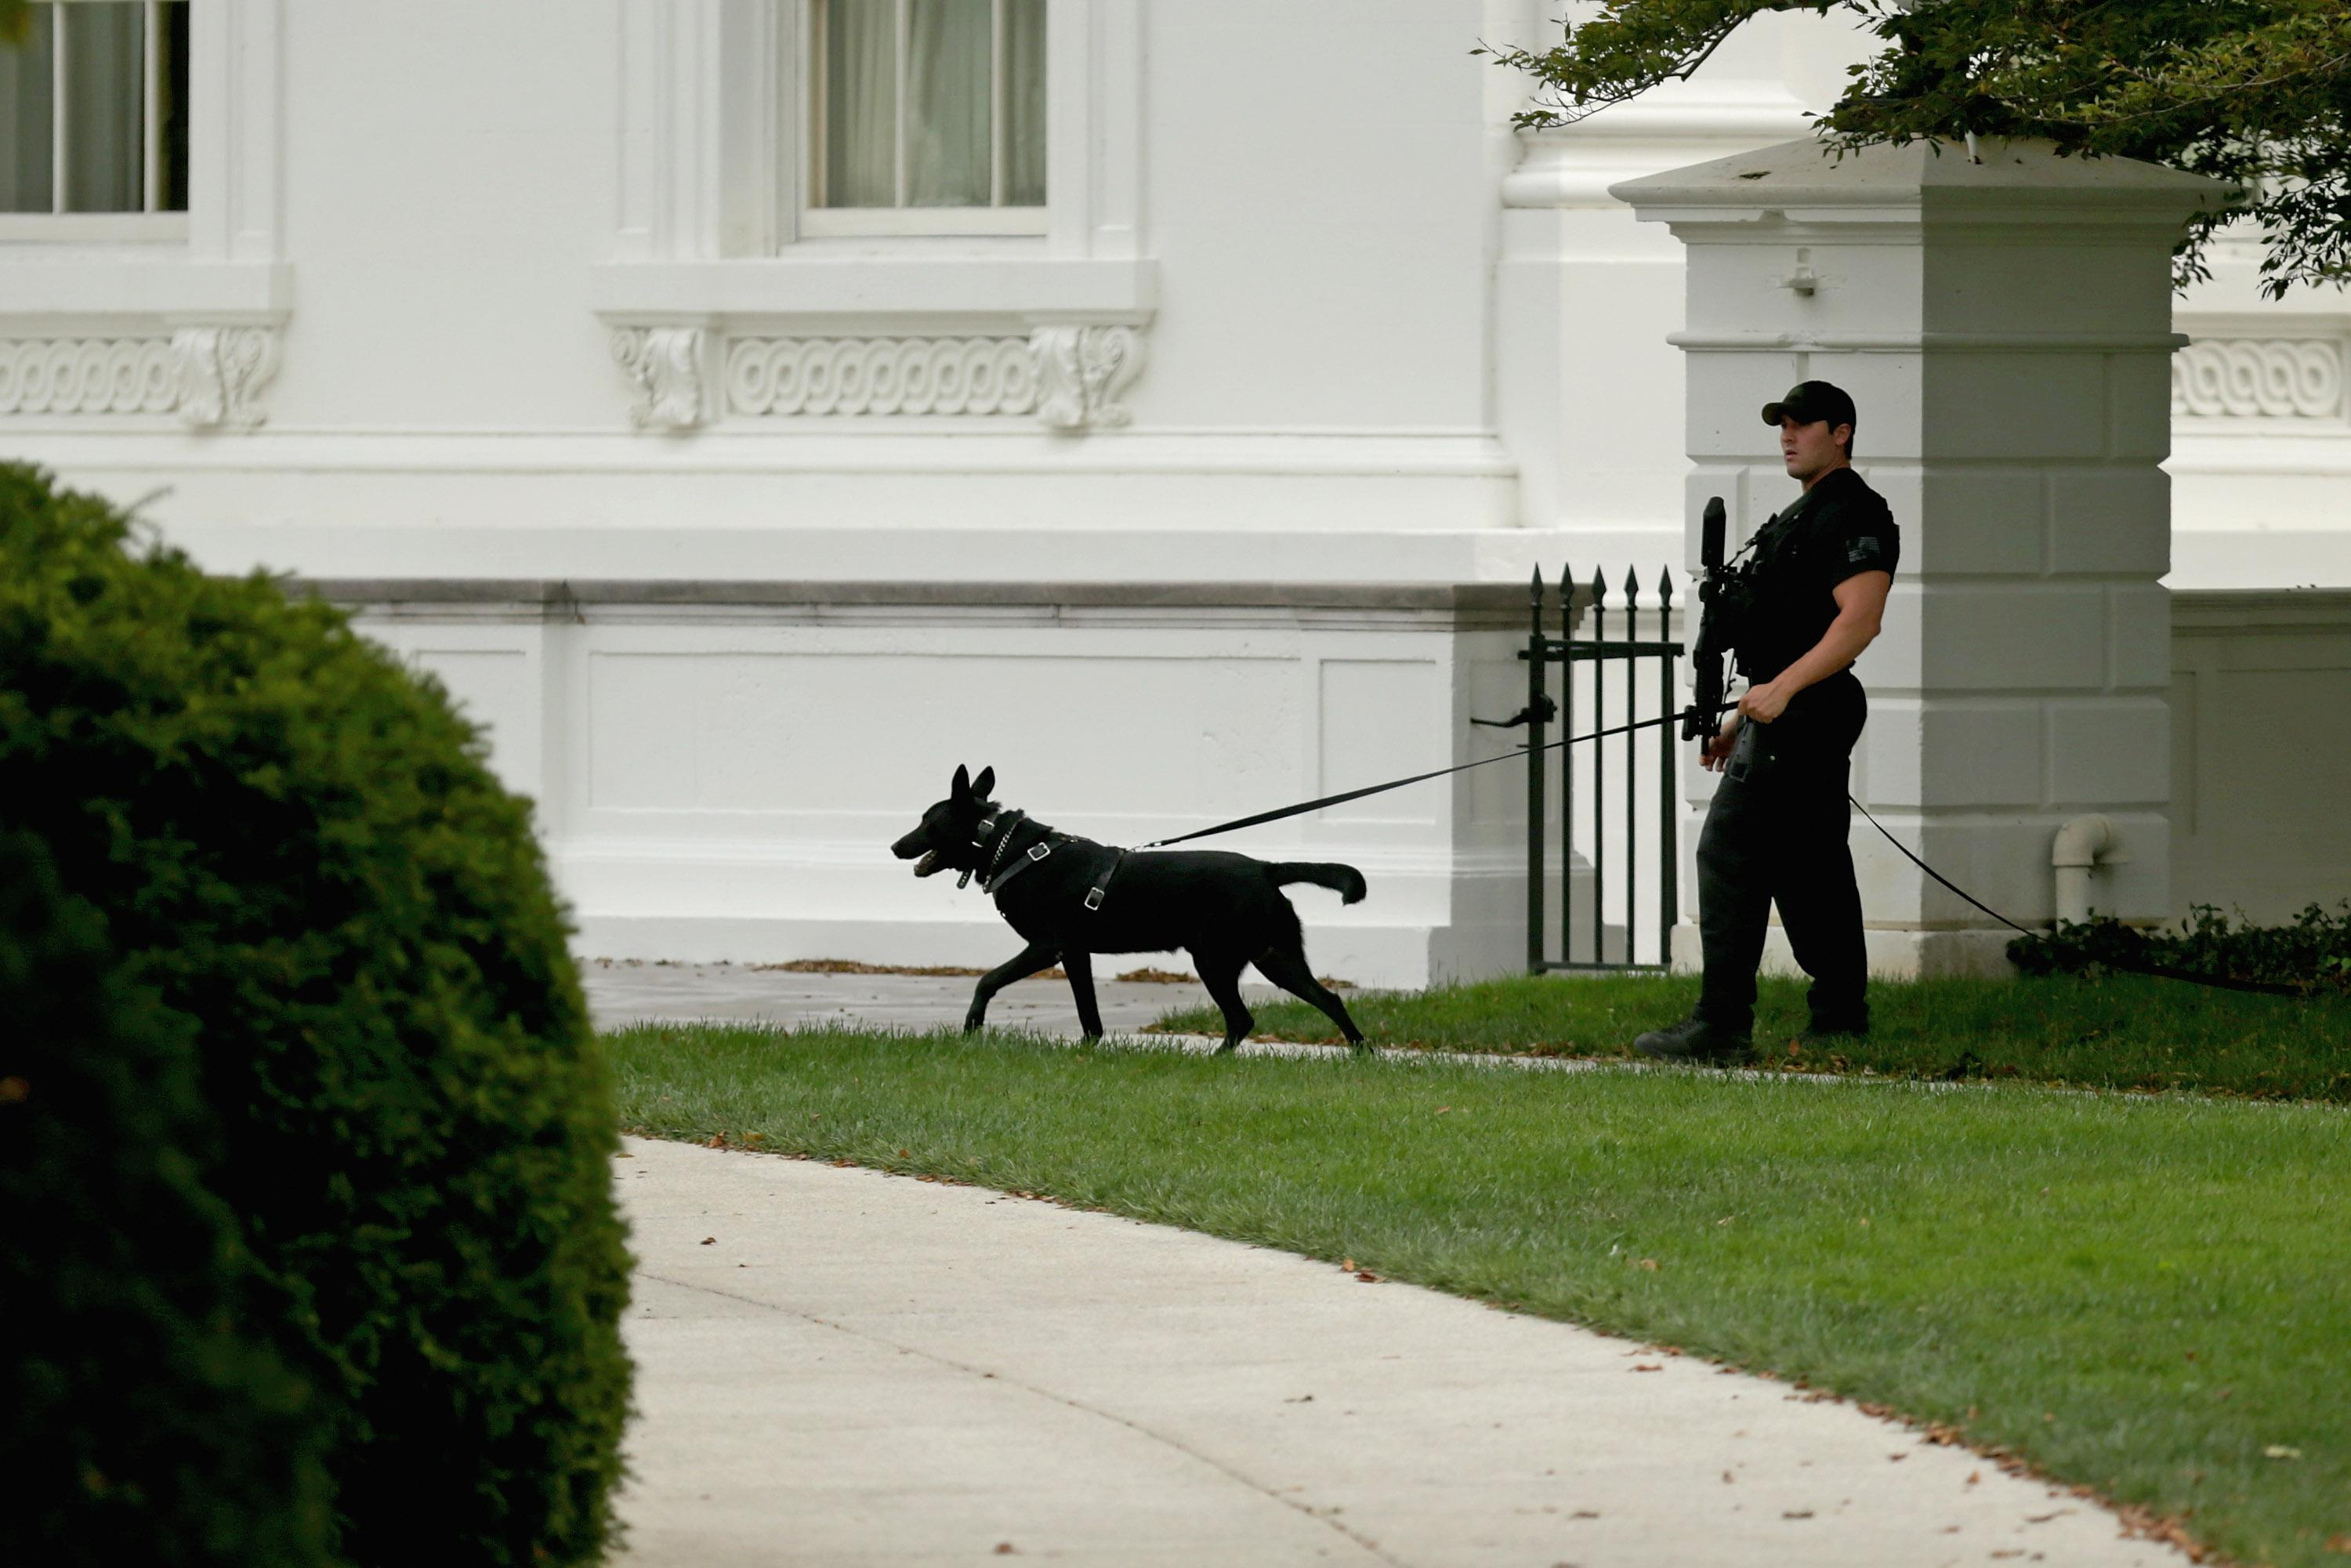 White House On Lockdown After Shooting At U.S. Capitol